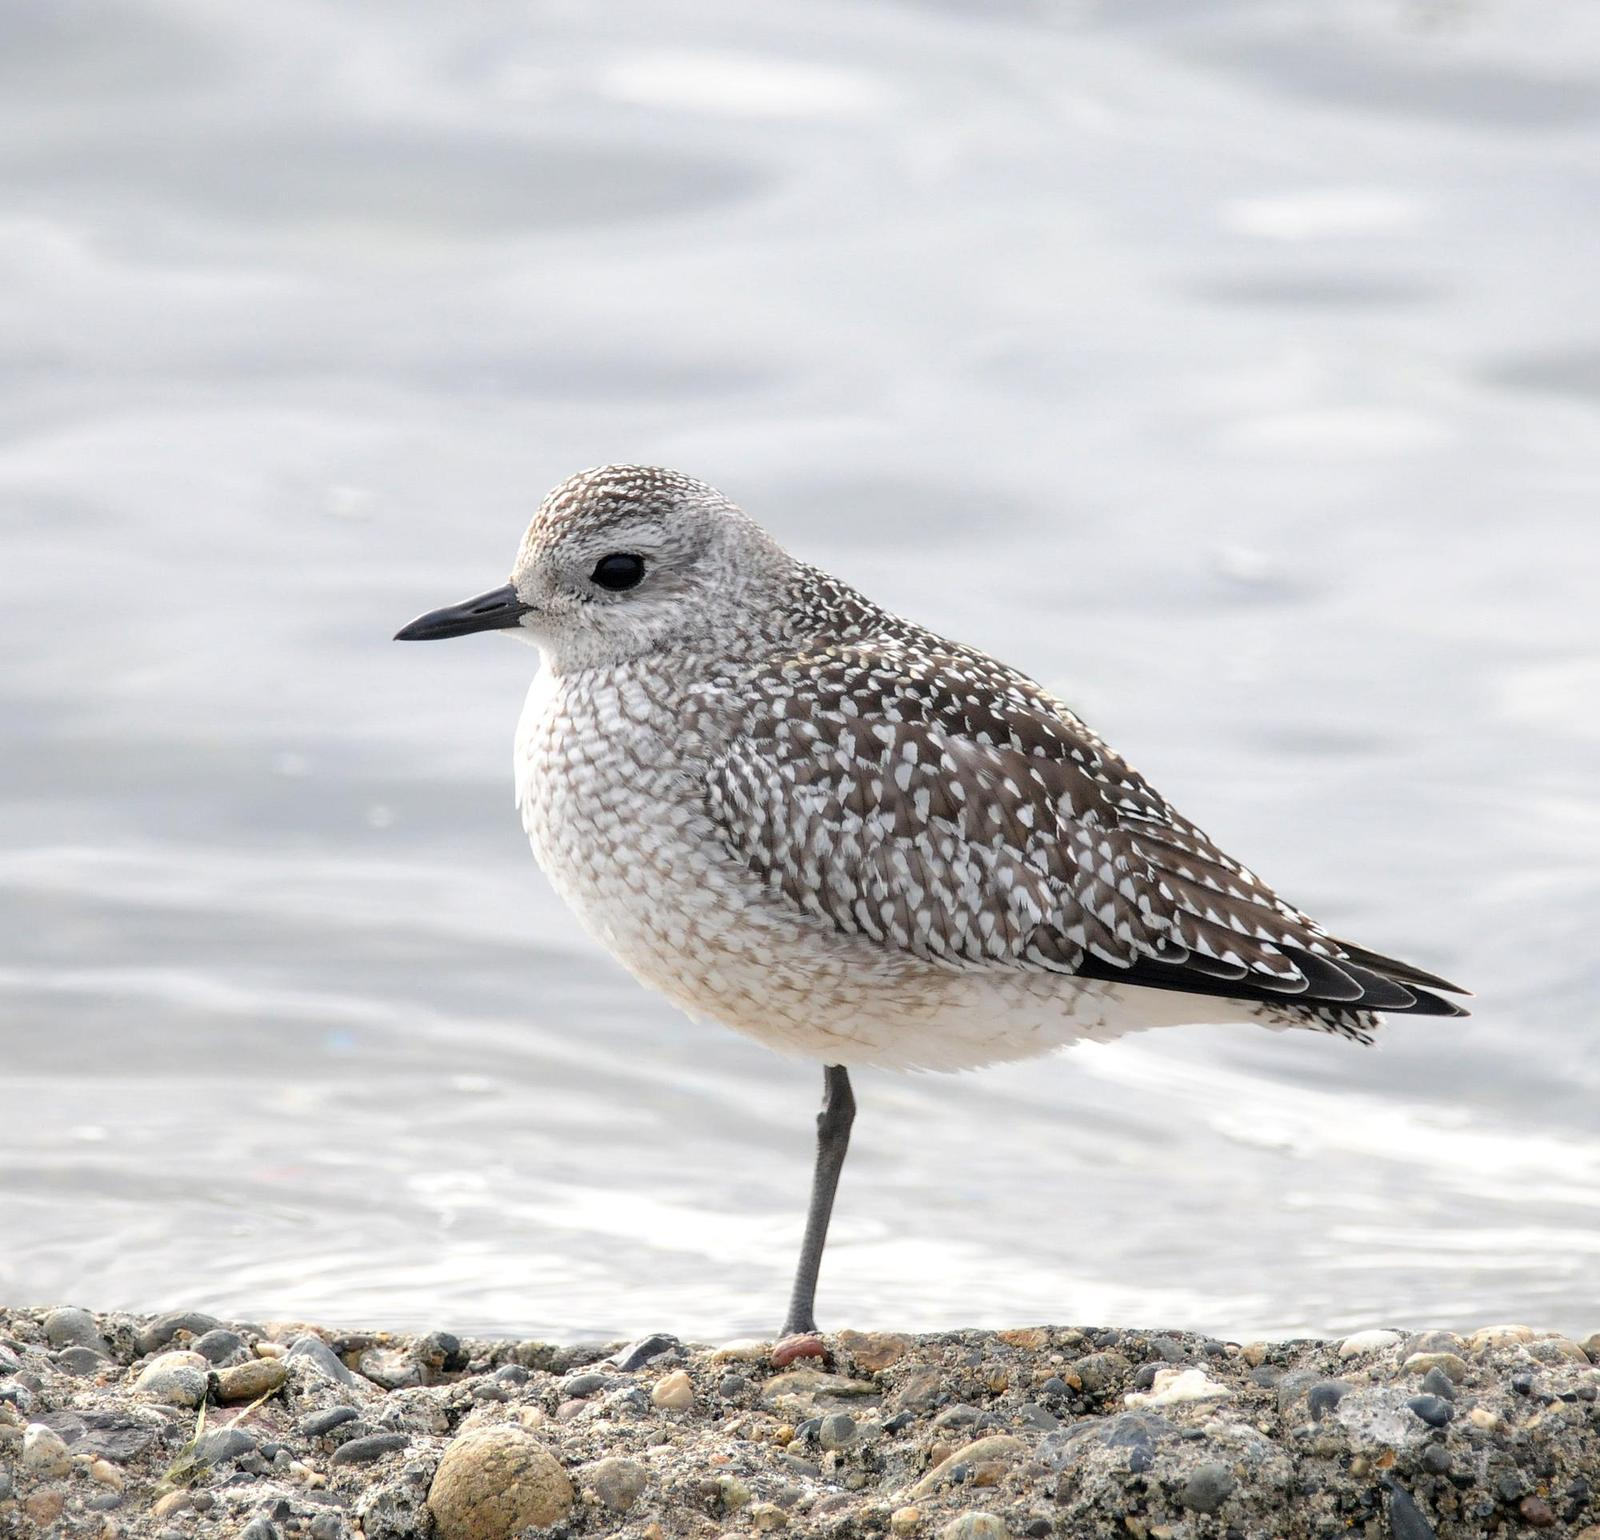 Black-bellied Plover Photo by Steven Mlodinow